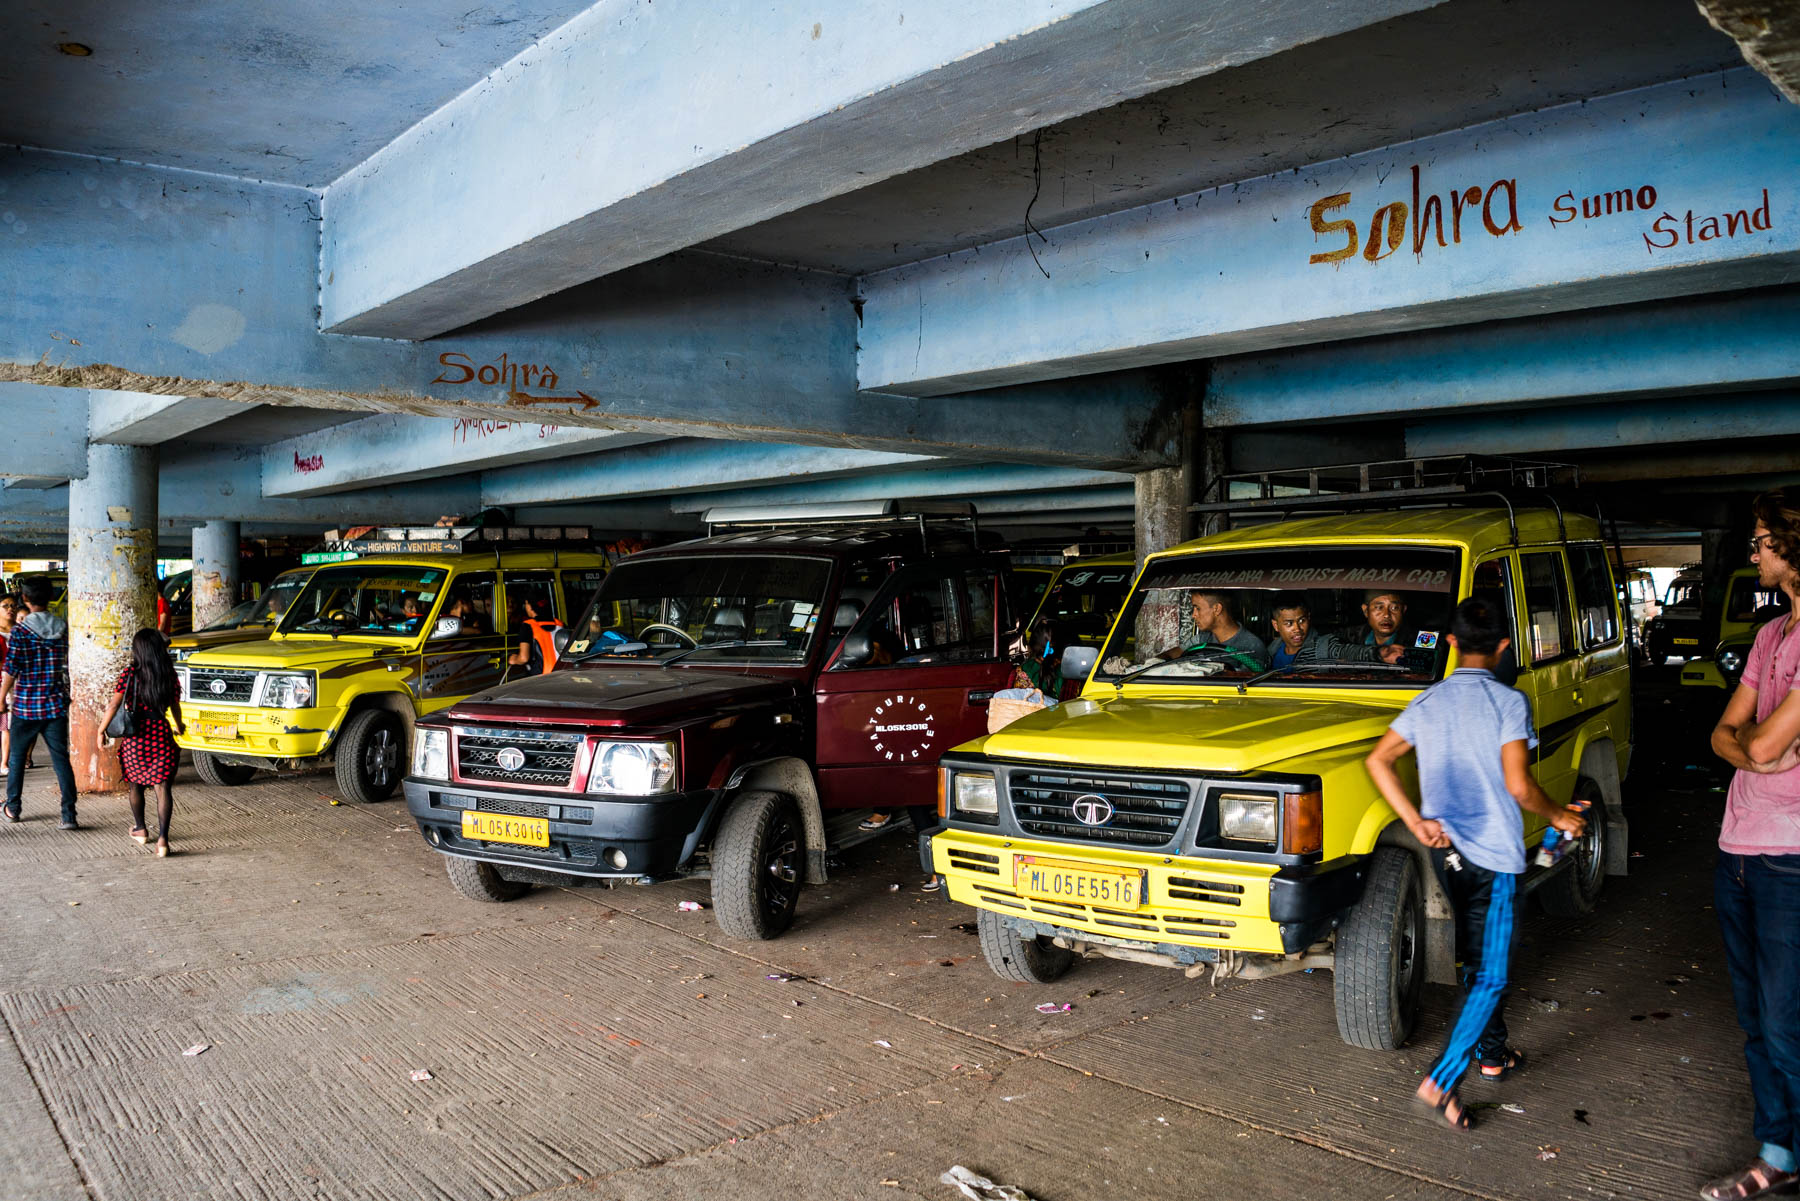 How to get from Guwahati to Shillong and Cherrapunjee in Meghalaya, India - The Sumo stand in Shillong for rides to Sohra, AKA Cherrapunjee - Lost With Purpose